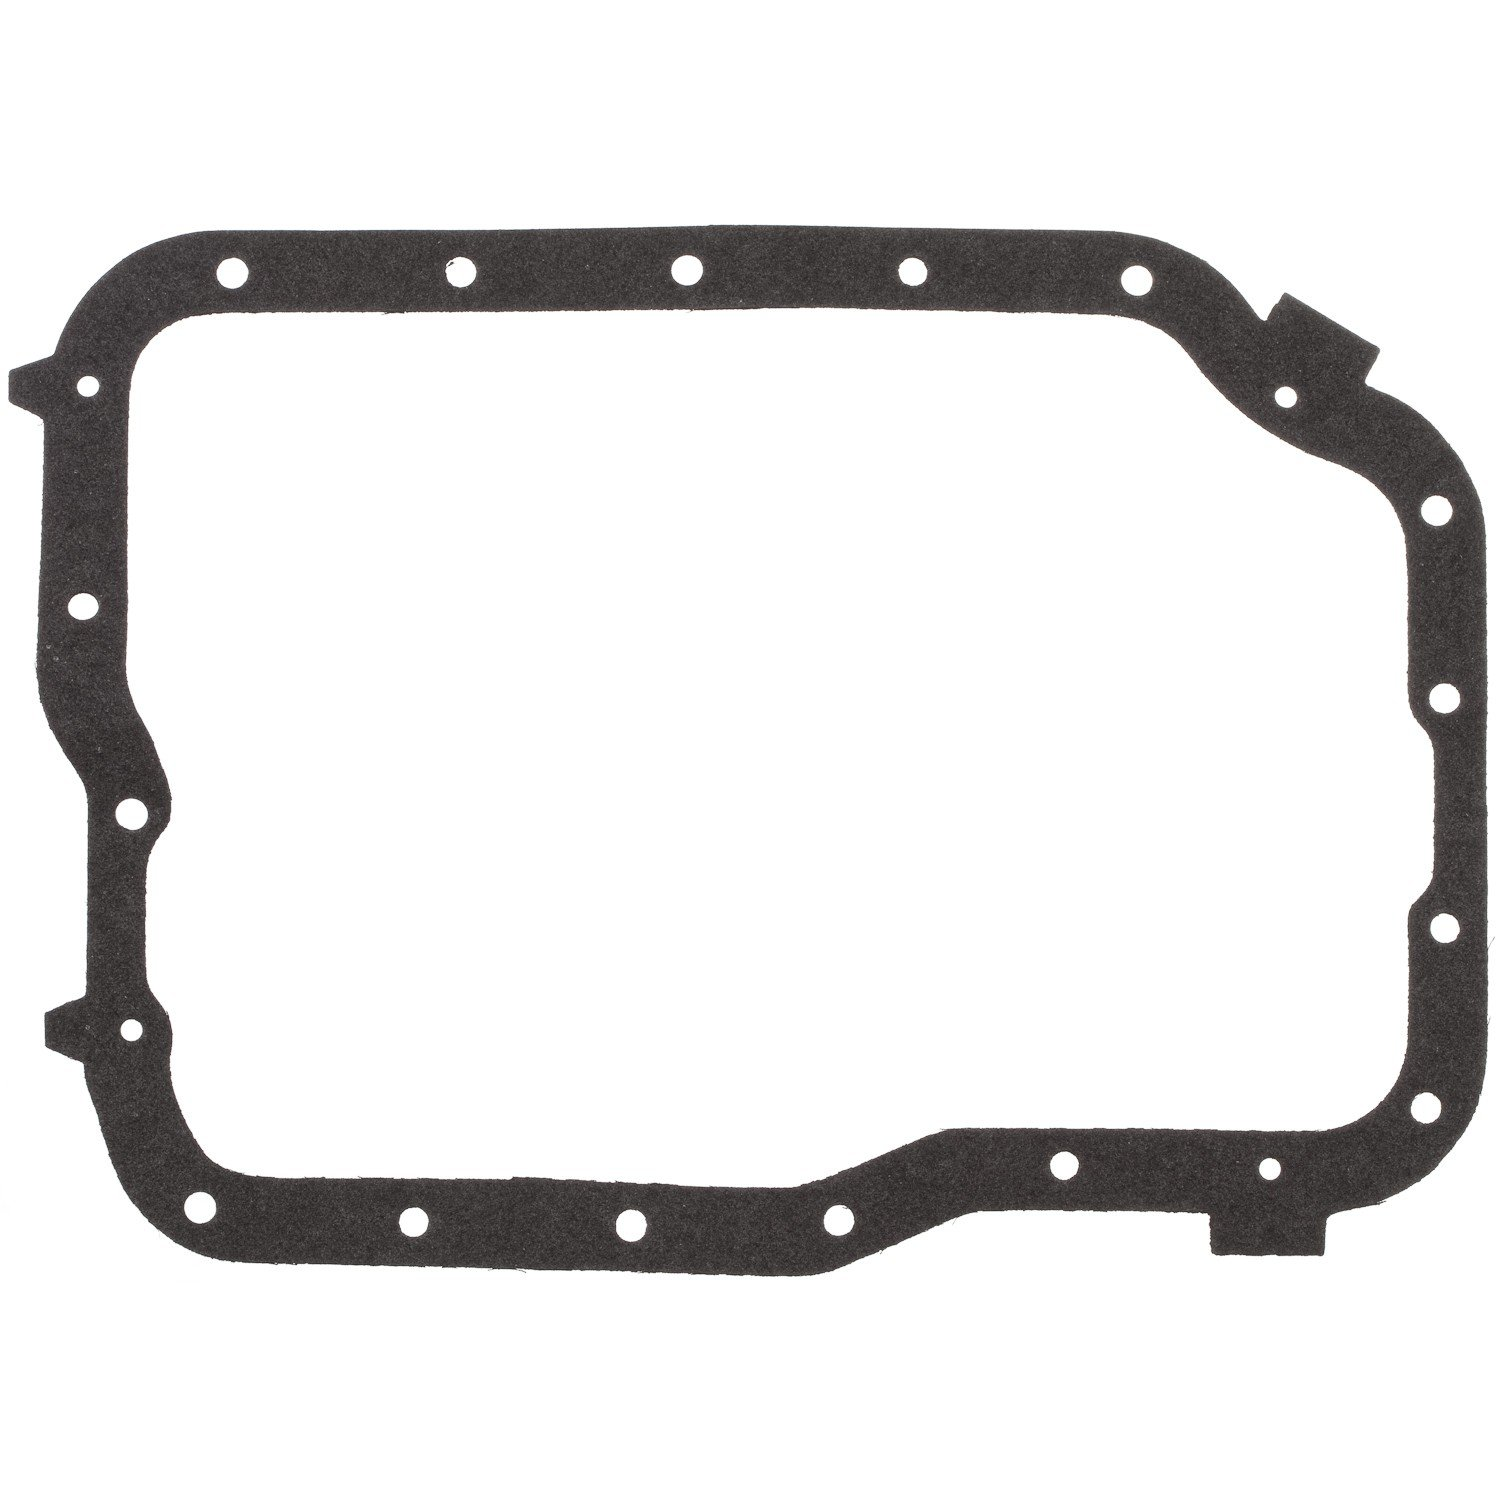 ATP NG-407 Automatic Transmission Oil Pan Gasket